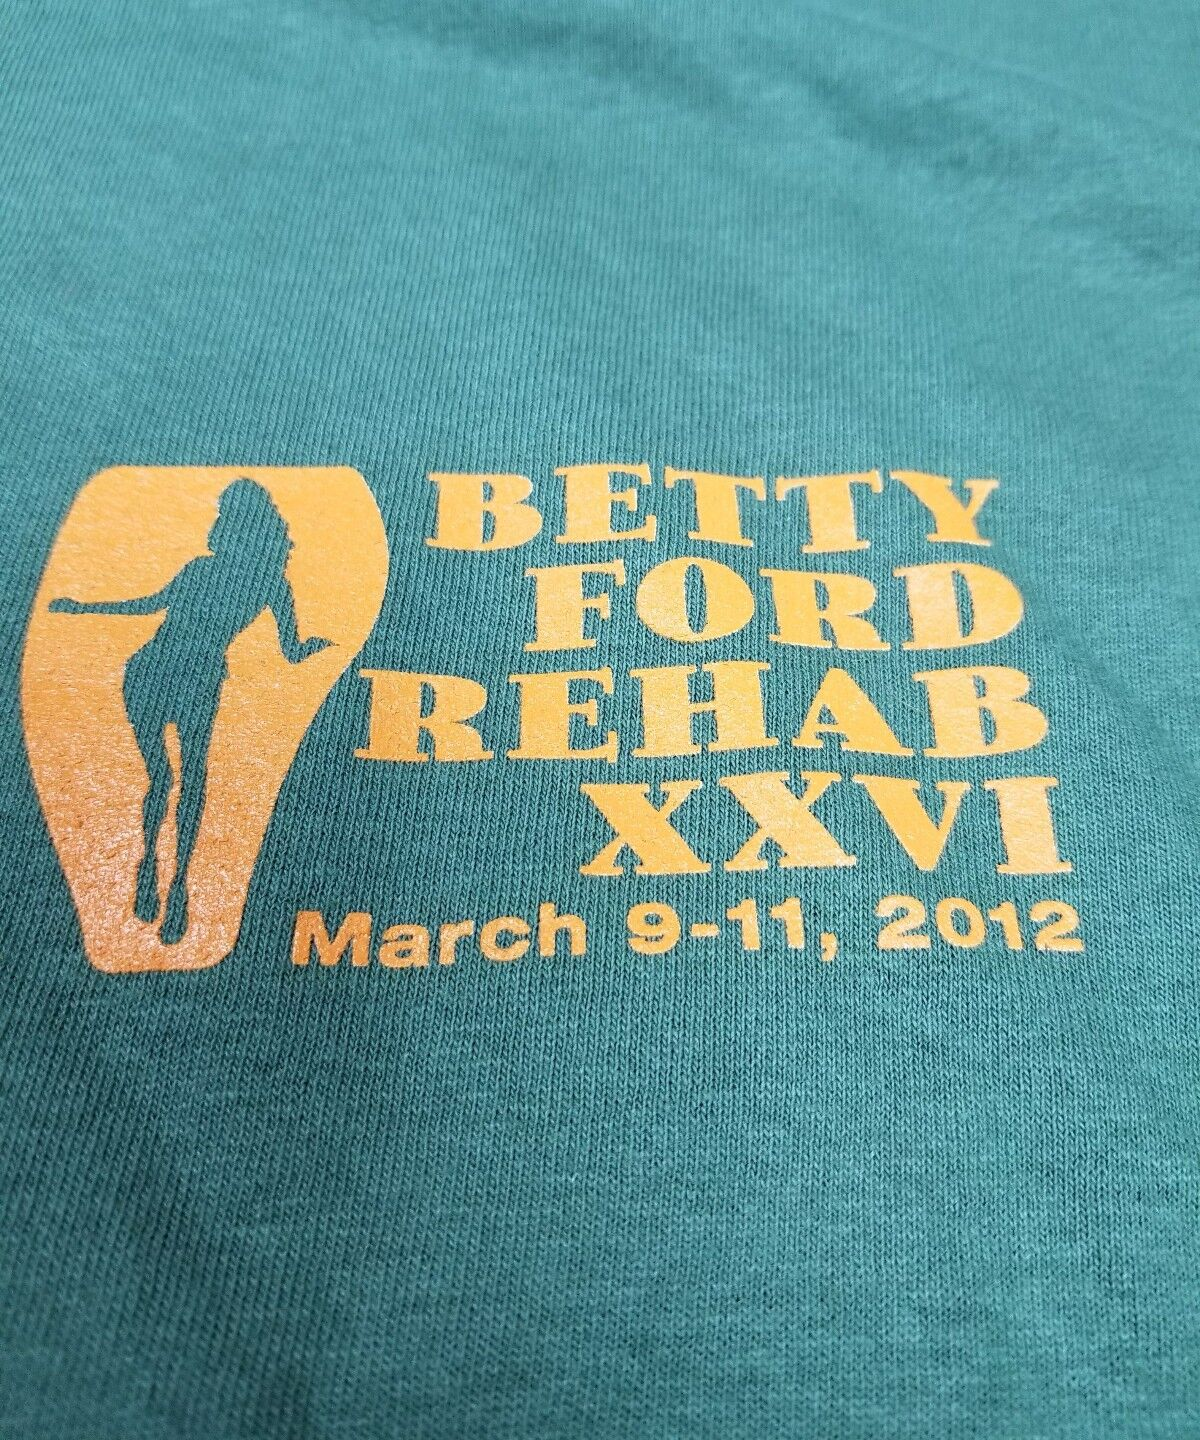 2012 Betty Ford Center Rehab Hash Amy Celebrity Winehouse Palm Springs Celebrity Amy T Shirt 7b4c15